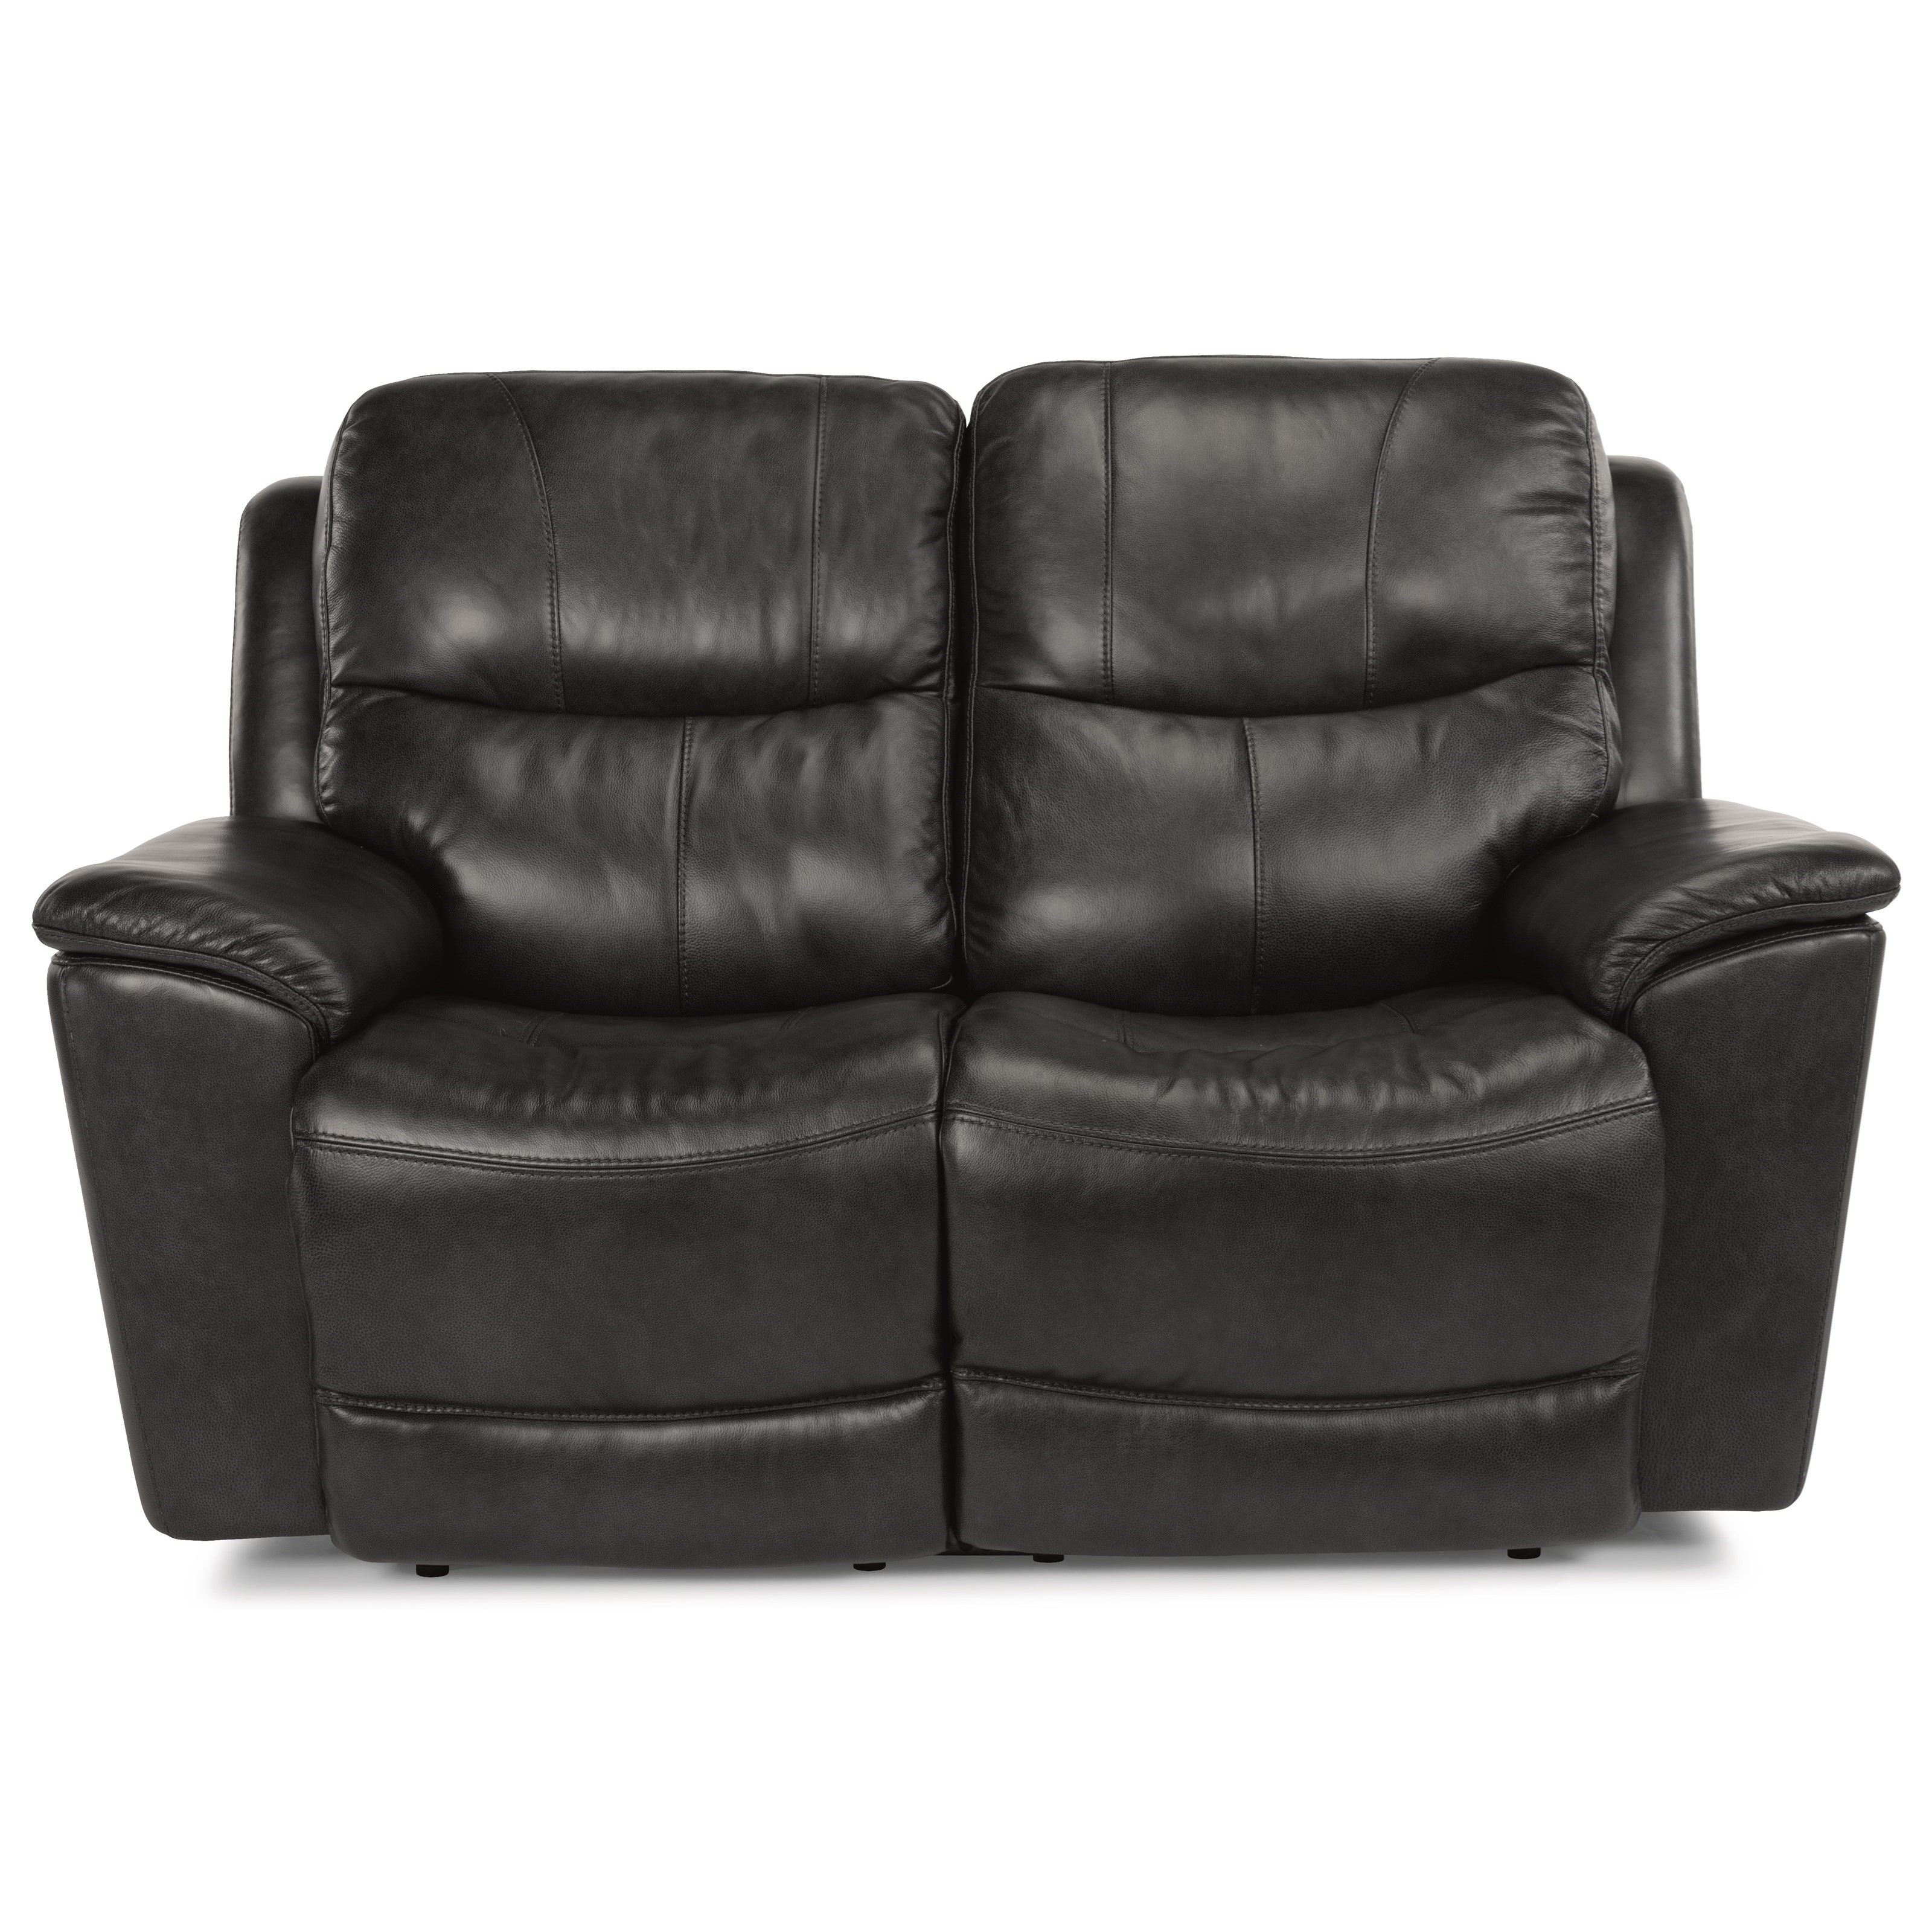 McHenry Power Reclining Love Seat by Flexsteel at Crowley Furniture & Mattress